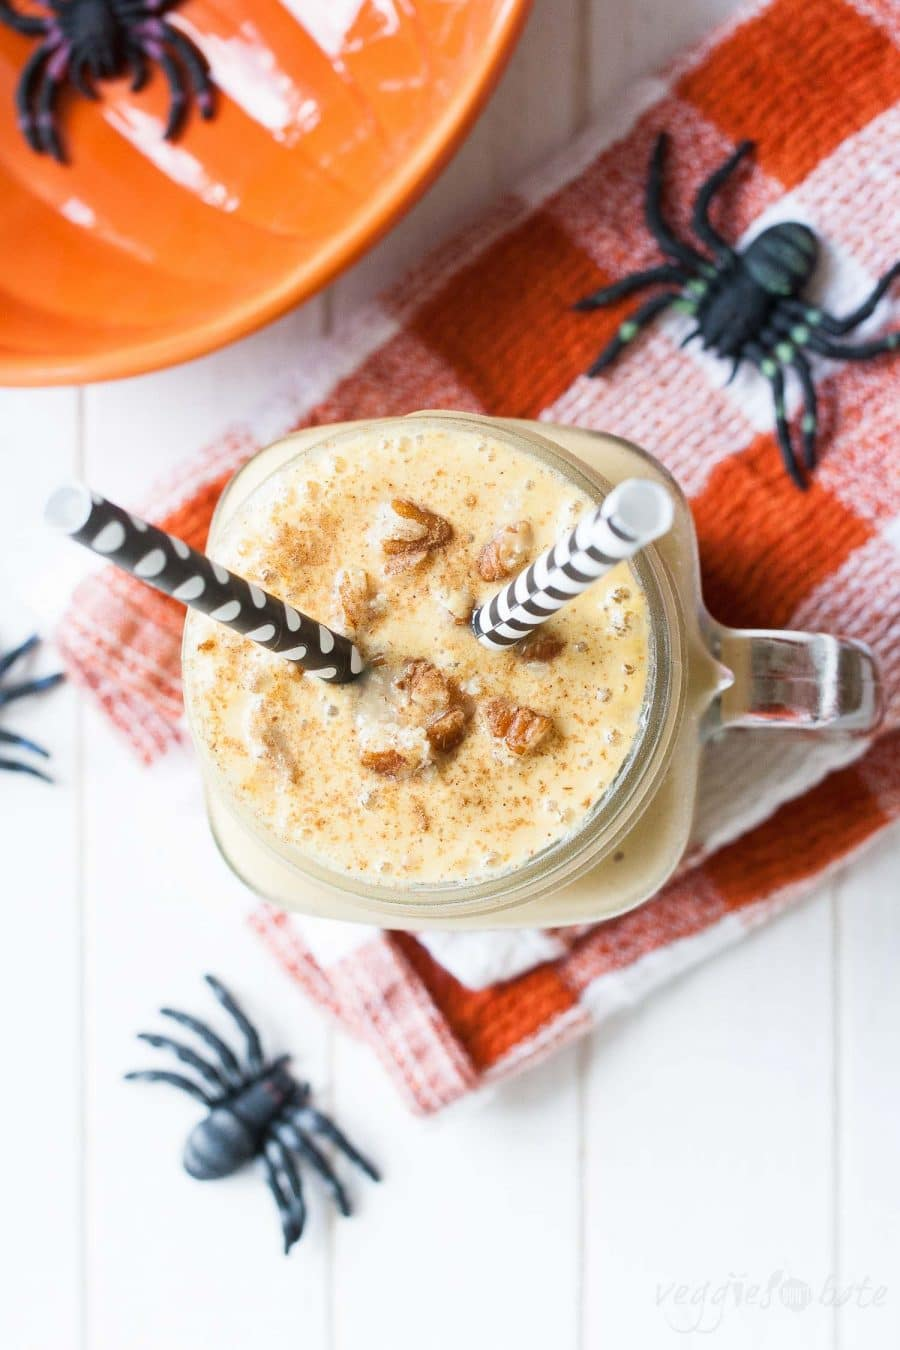 Vegan Pecan Pumpkin Shake from Ghoulish Gourmet by Kathy Hester